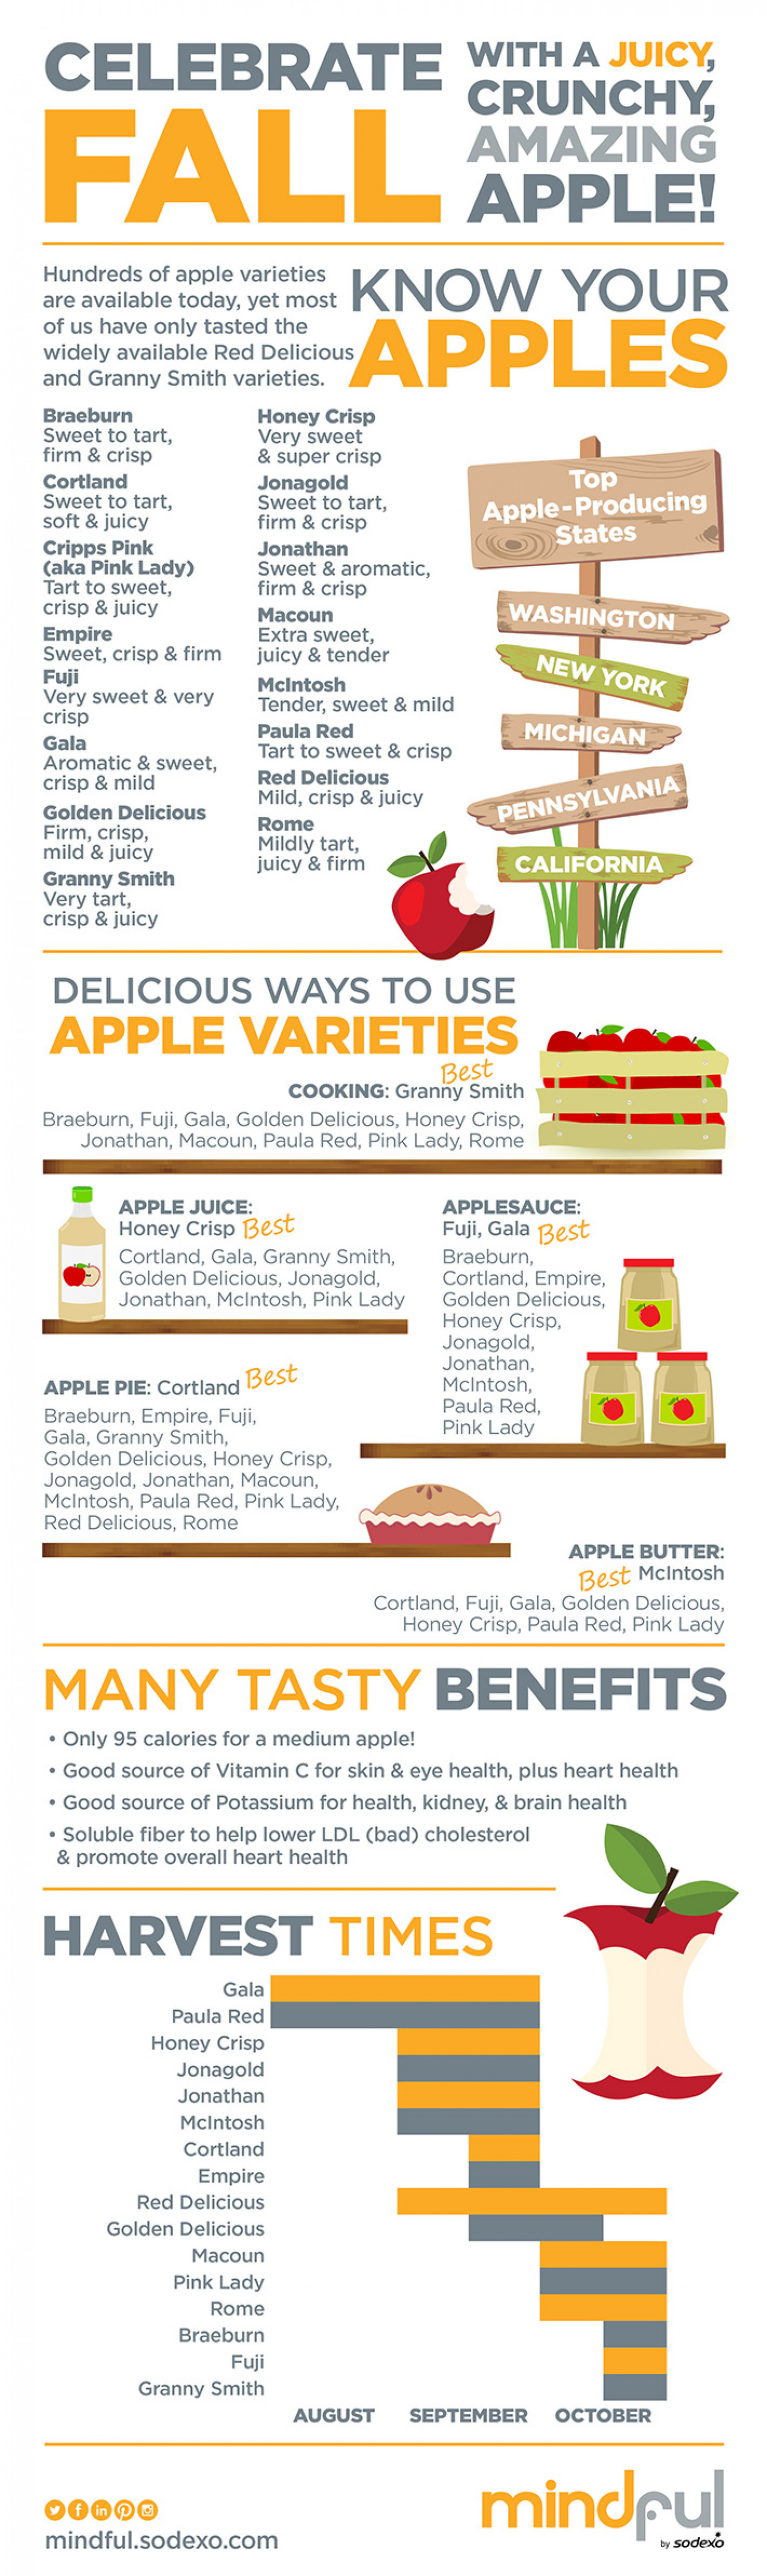 Know Your Aples Infographic